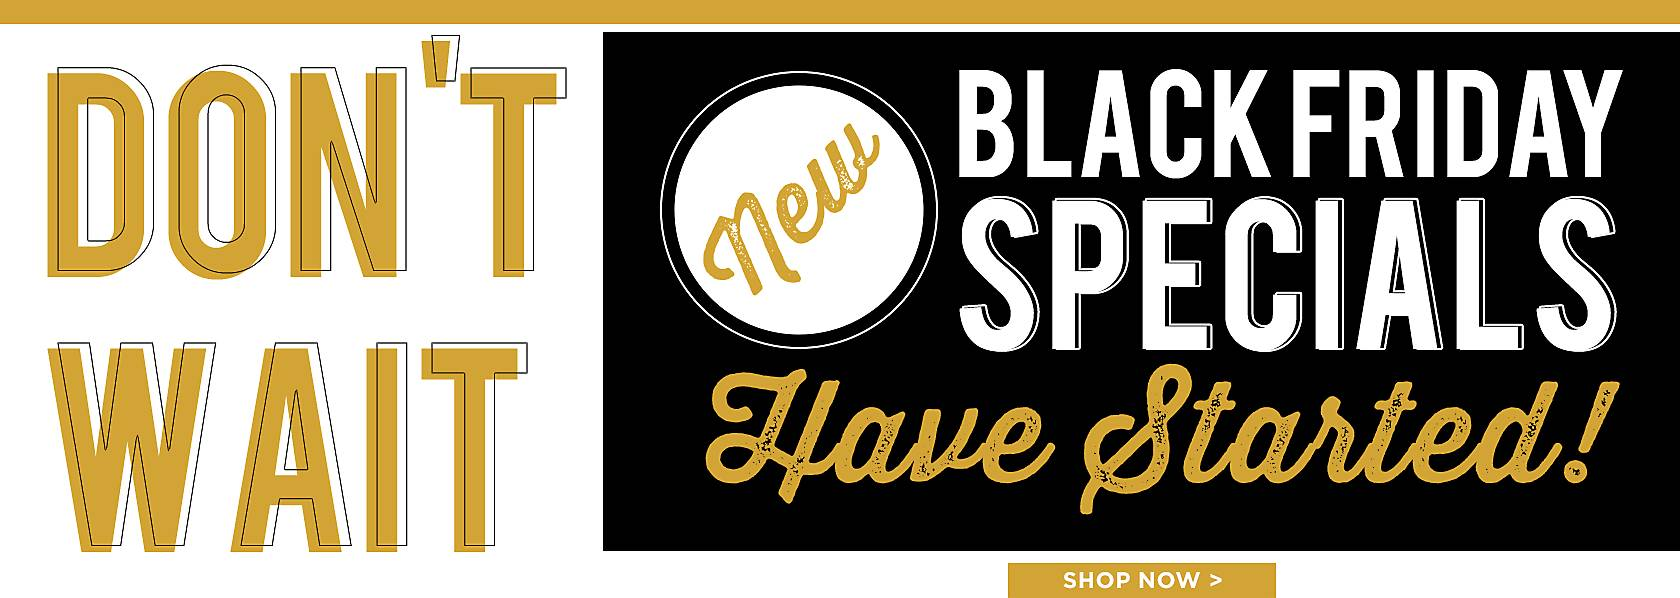 Black Friday Specials Start Now - Shop Now